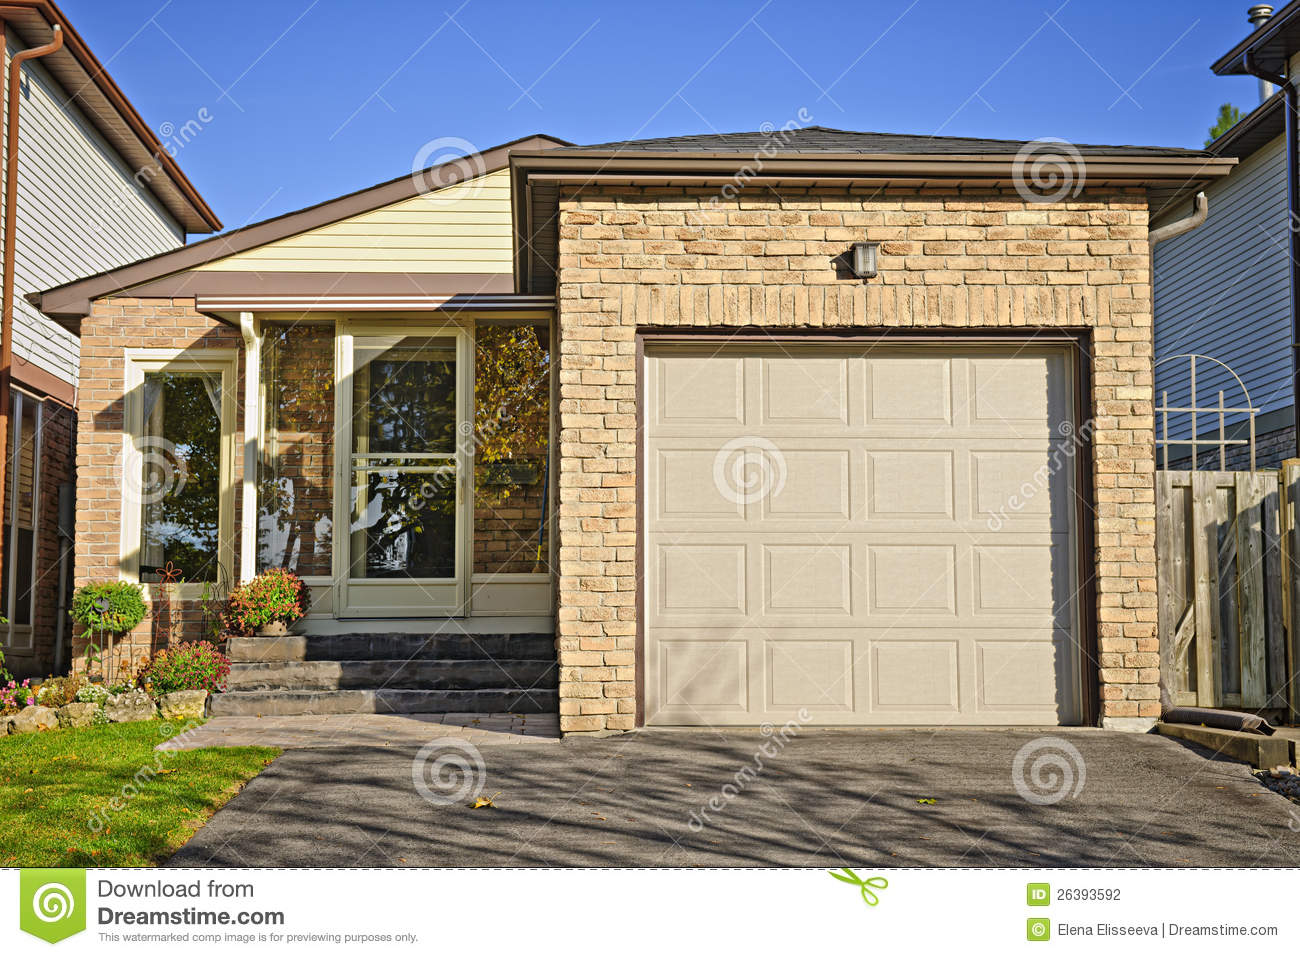 Small starter home stock photography image 26393592 for Small starter homes